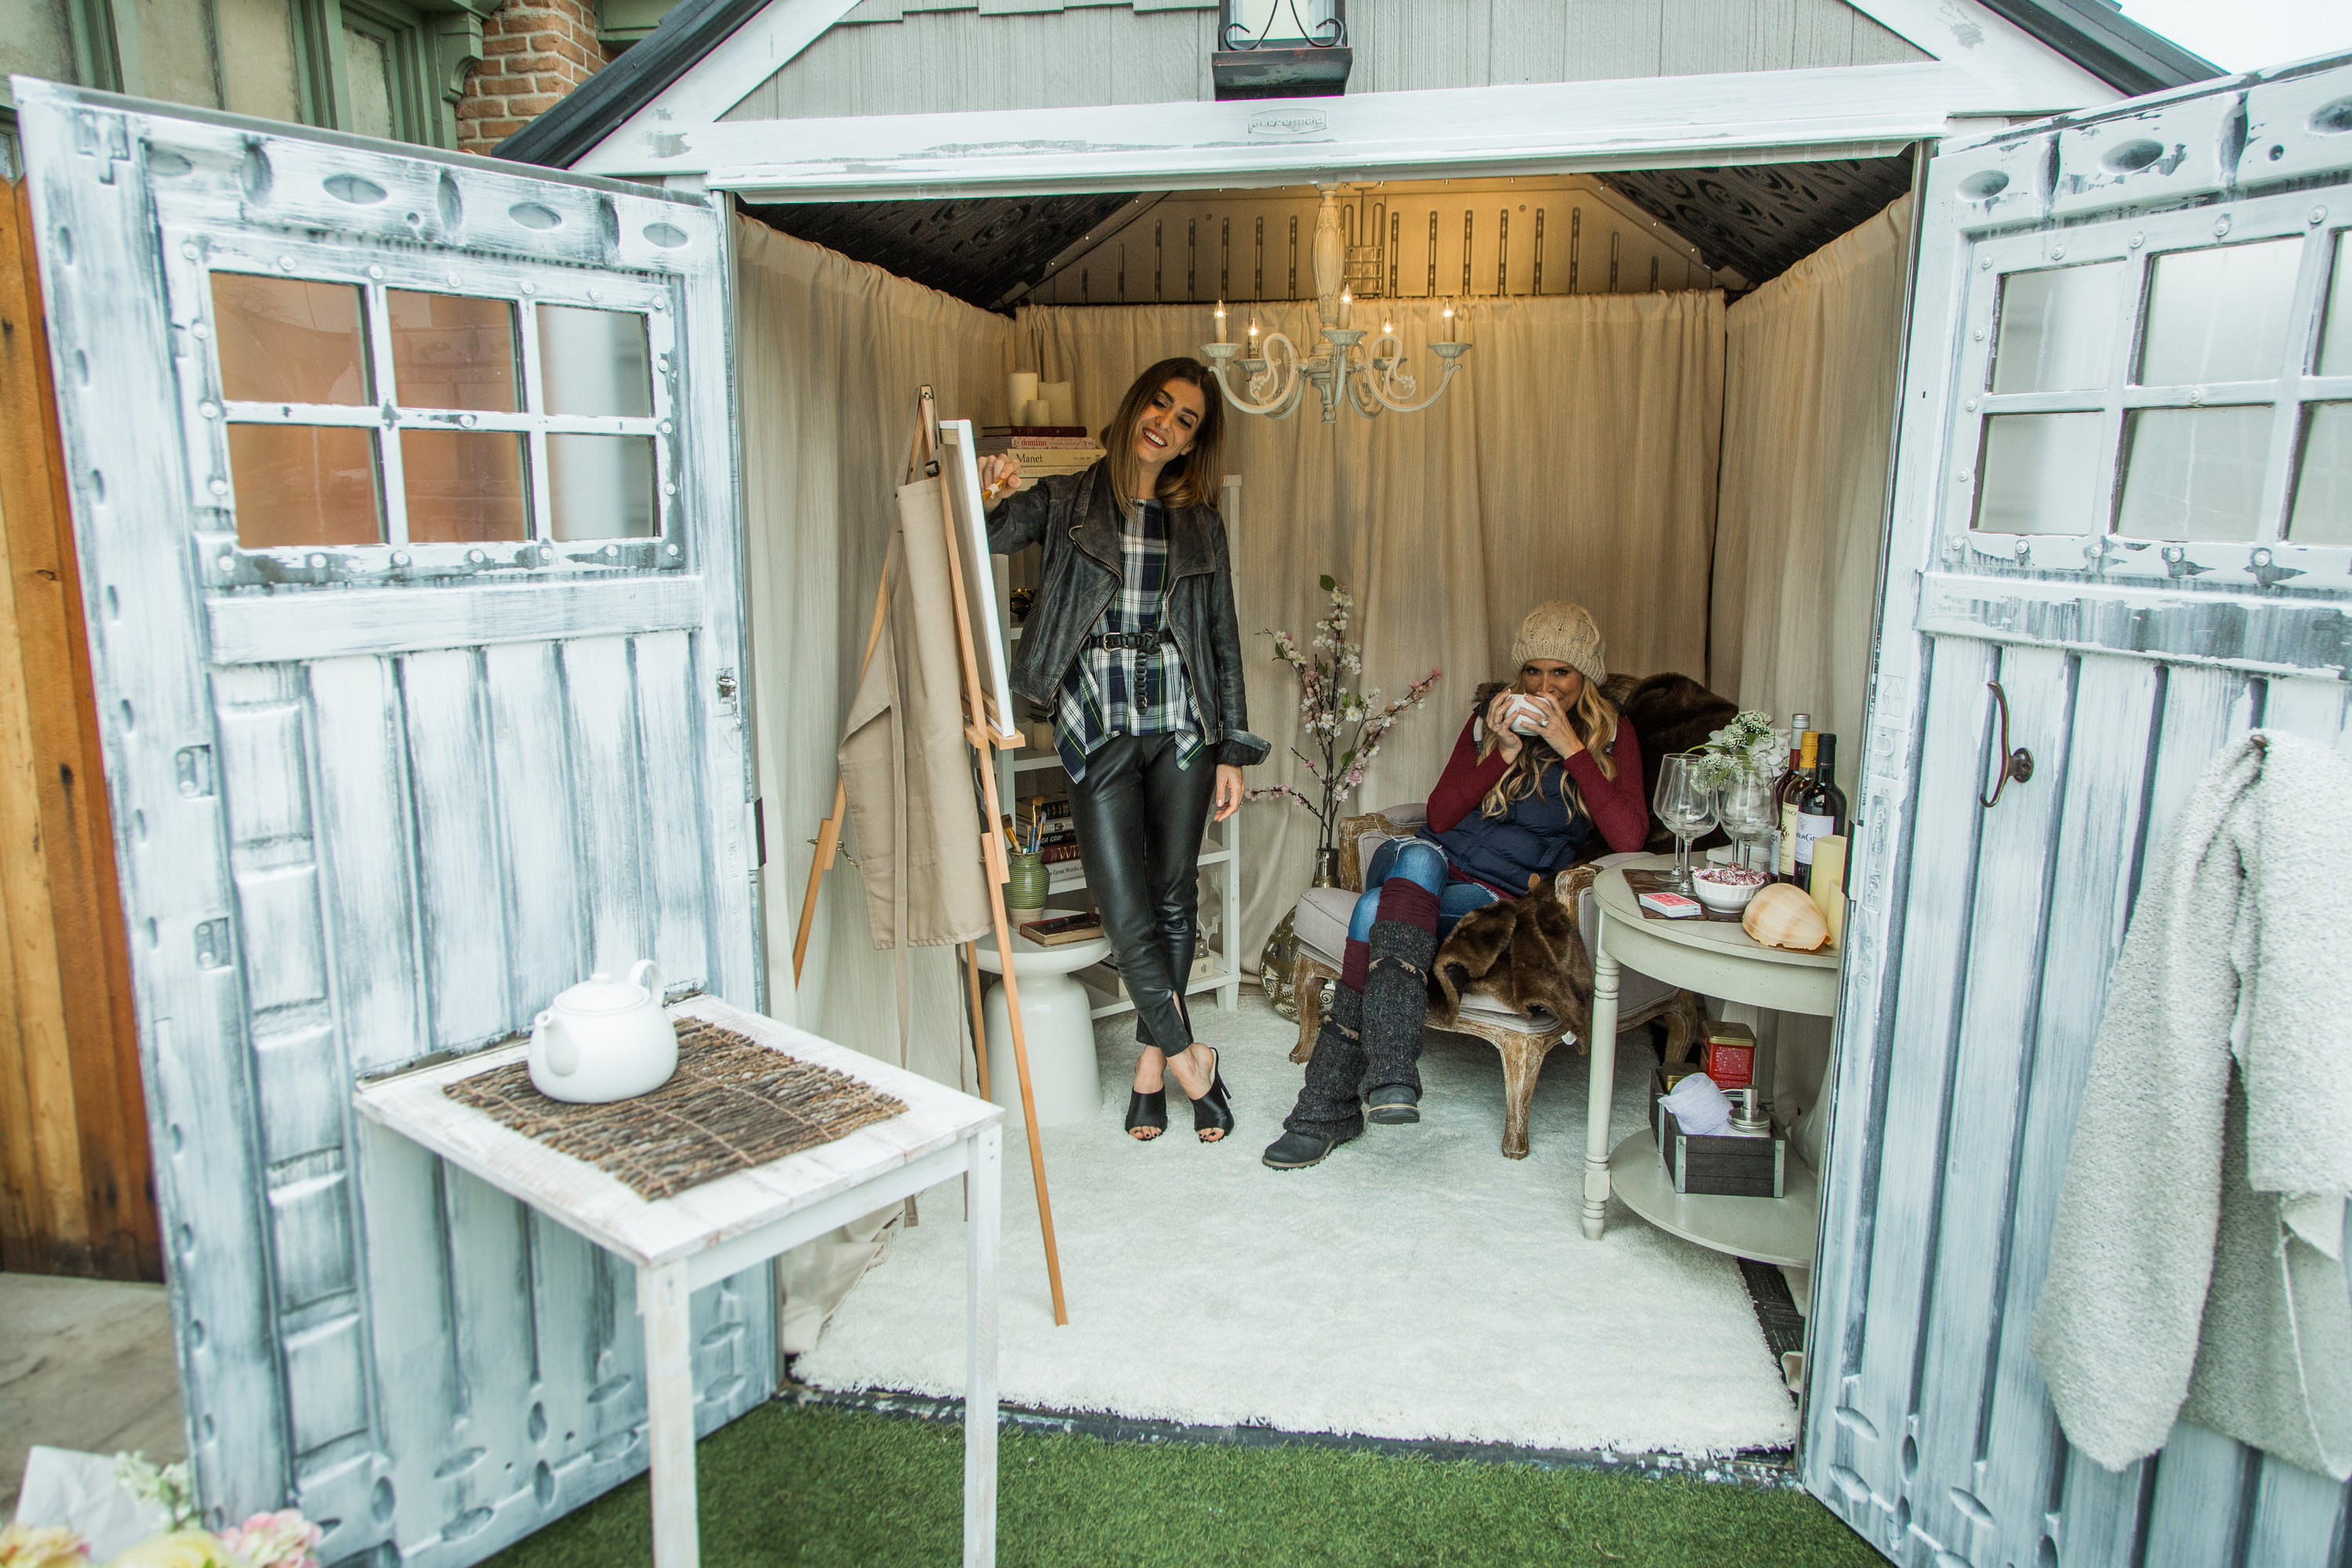 Preferred How To - Home & Family: DIY She-Shed | Hallmark Channel RX46